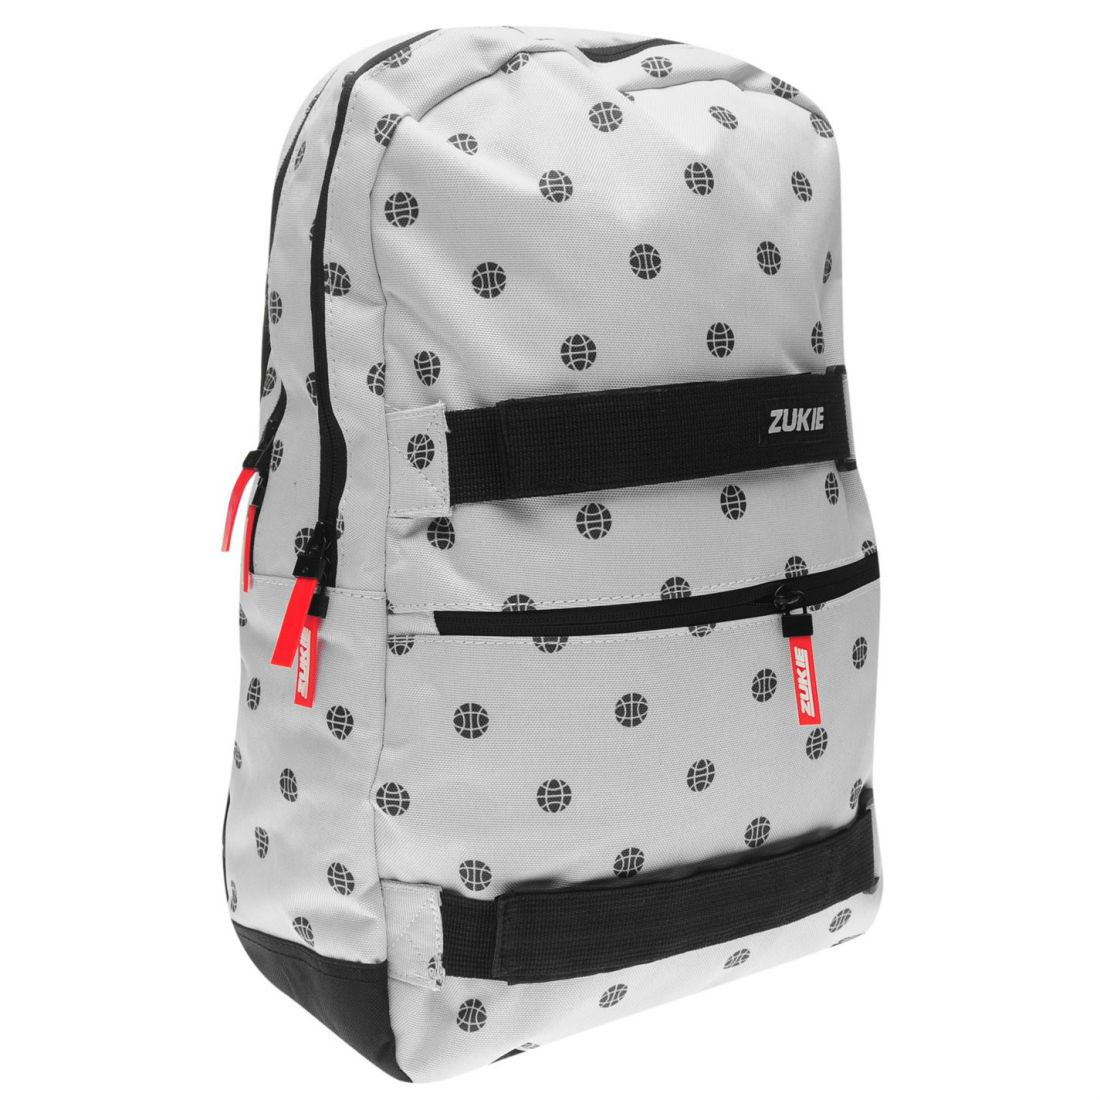 0a414a9feaa5 Details about Zukie Mens Skate Pattern Backpack Back Pack Zip Mesh Print  All Over Sport